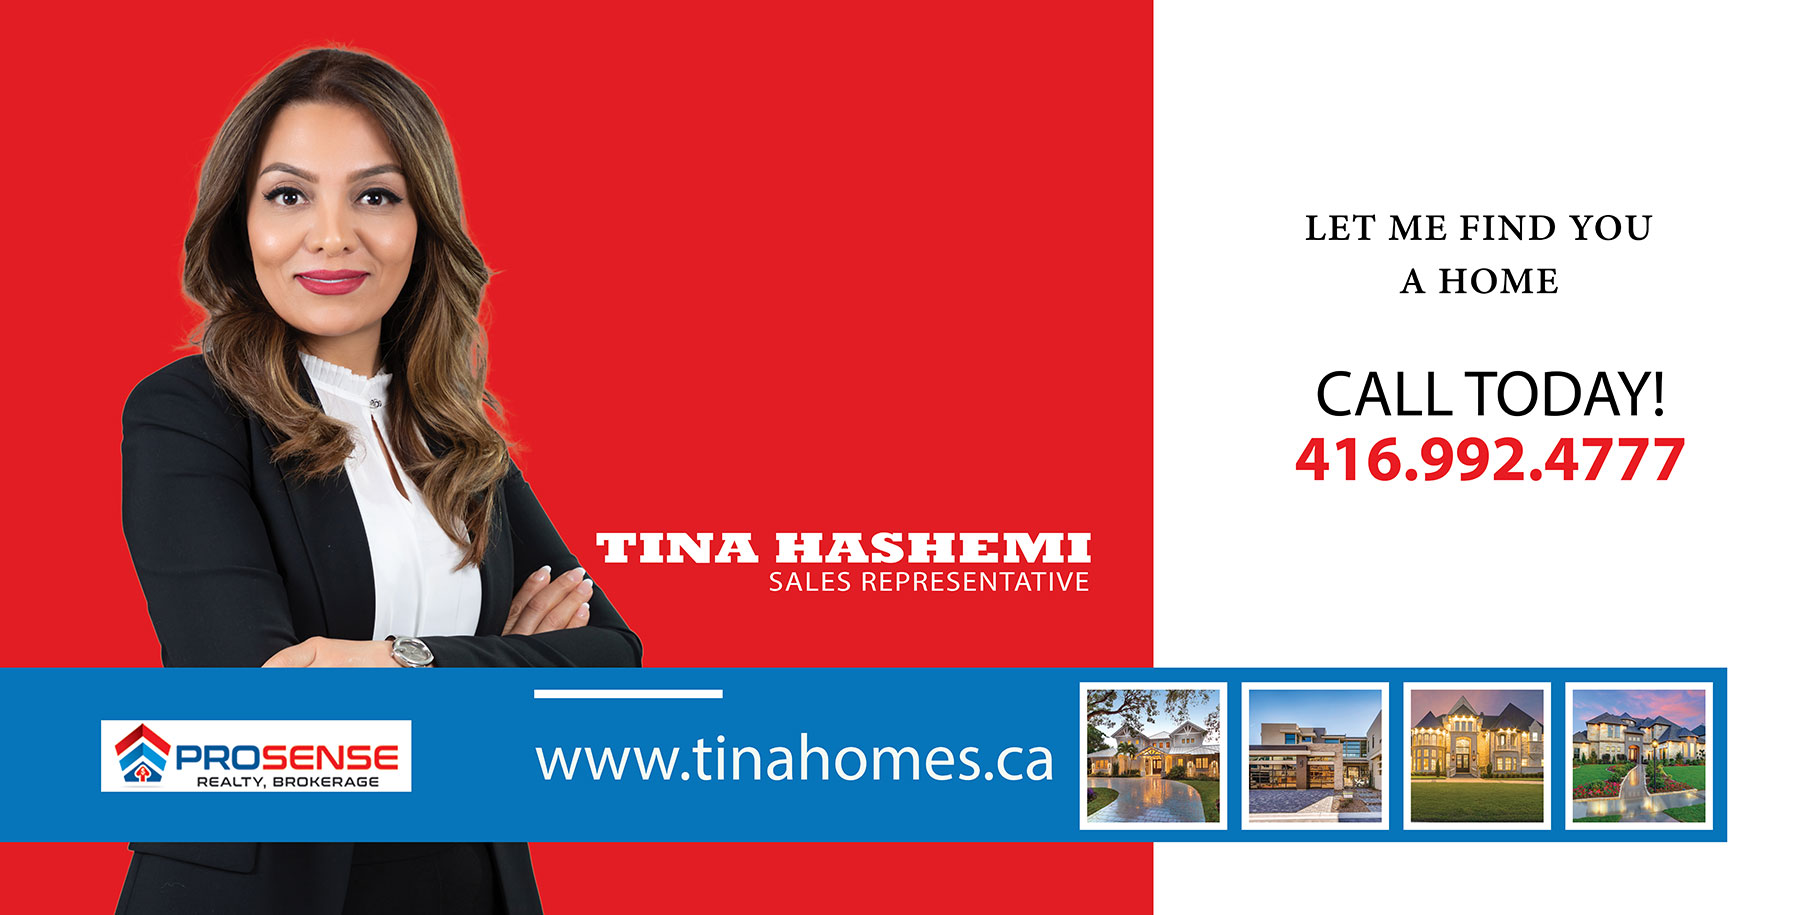 Tina Hashemi, Sales Representative, Prosense Realty, Brokerage